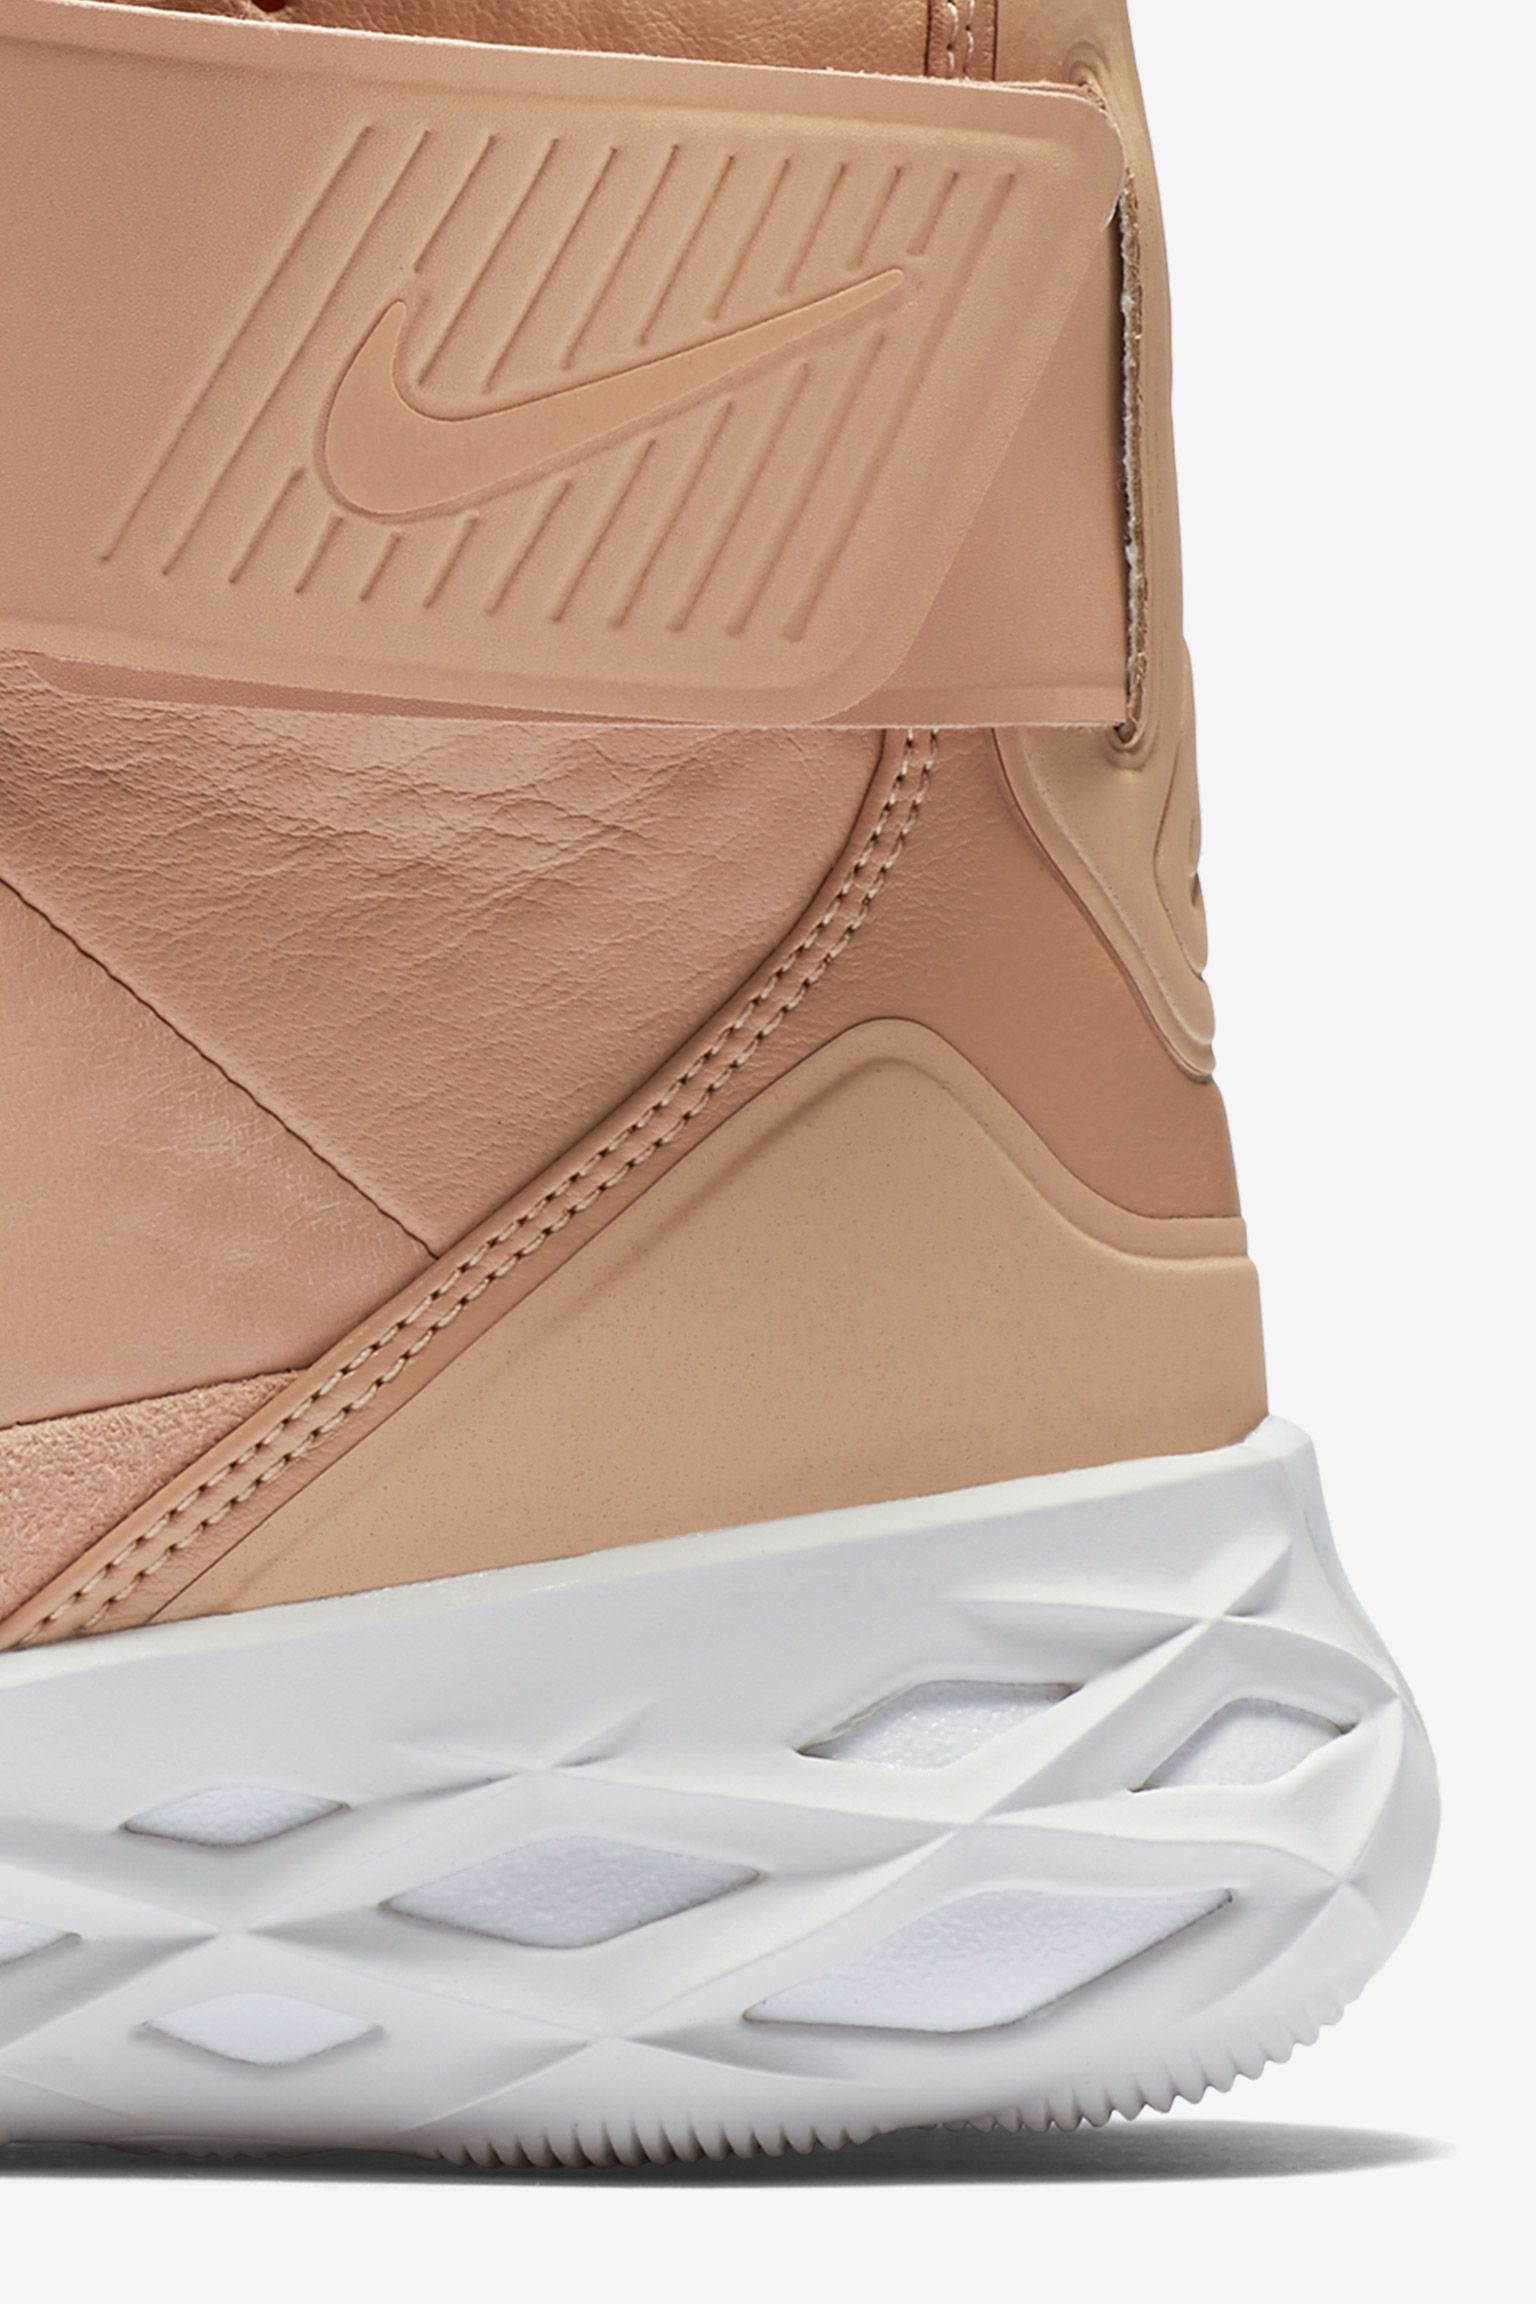 Nike Swoosh HNTR 'On The Hunt' Vachetta Tan